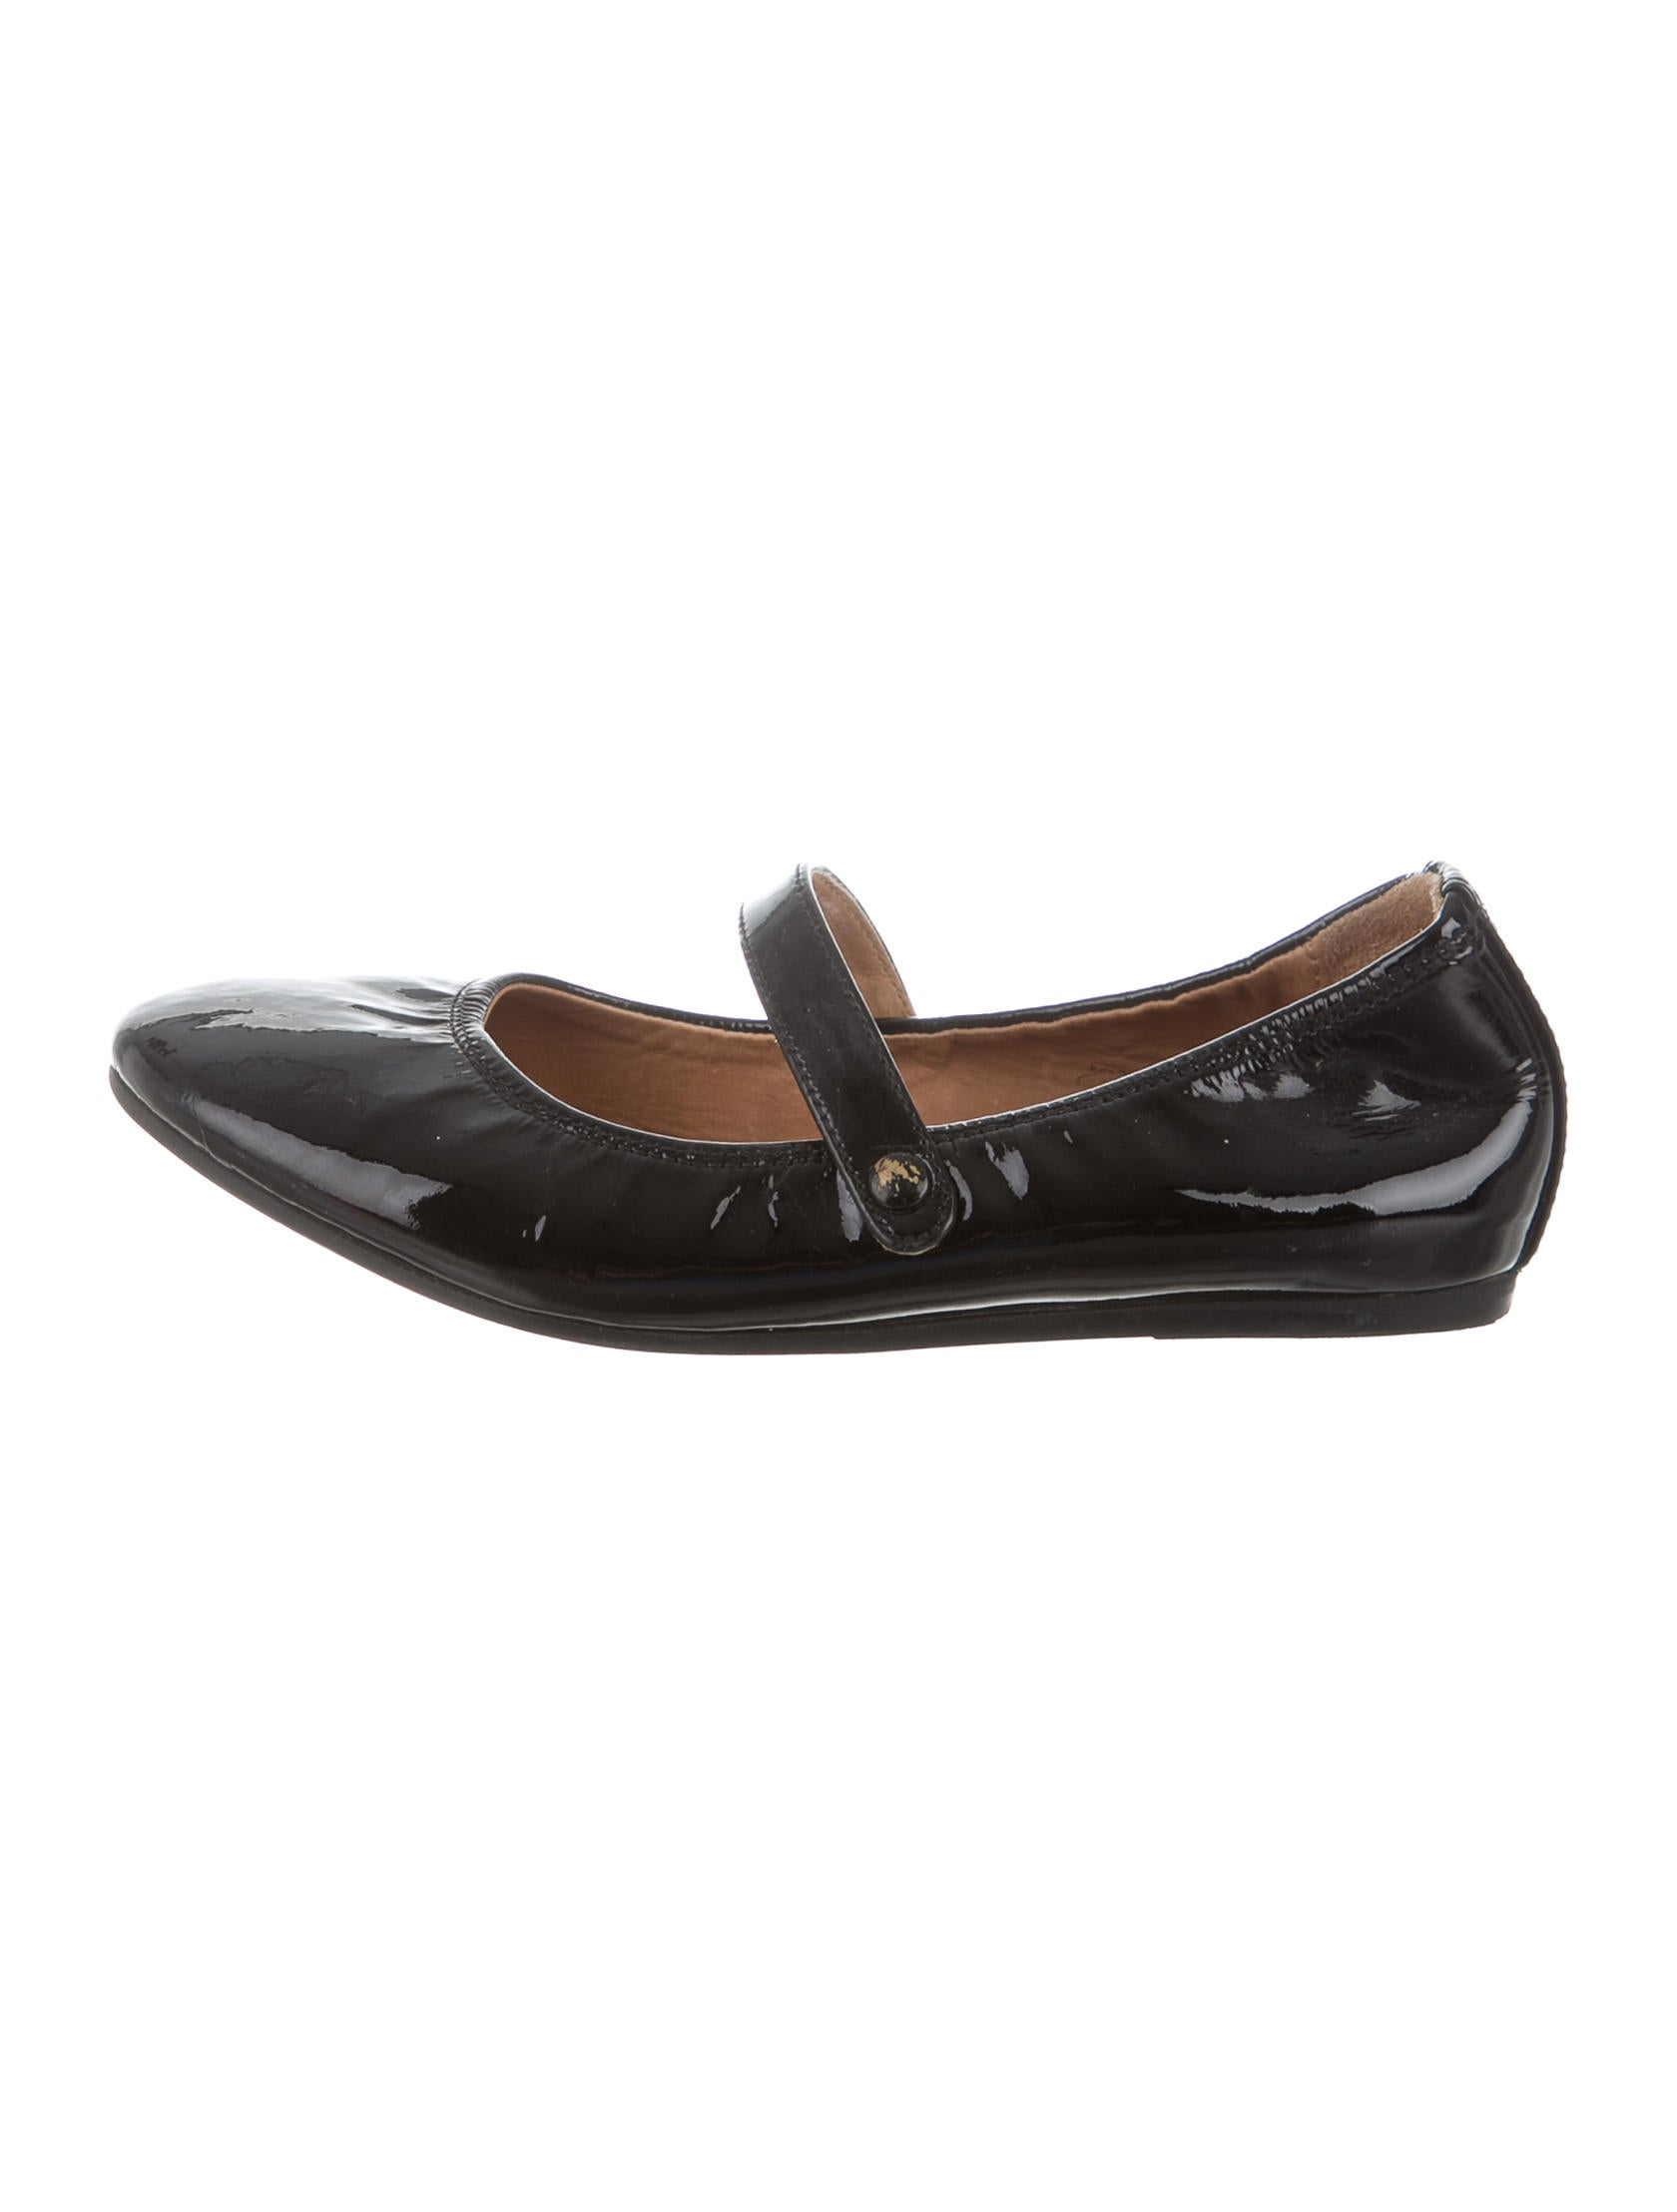 These vintage patent leather ballet flats from Boutique Ferragamo are the perfect shade of deep crimson. The have wooden heels and are very narrow. The patent leather is in exceptional condition it shows very little signs of wear and tear which is an example of the quality of .